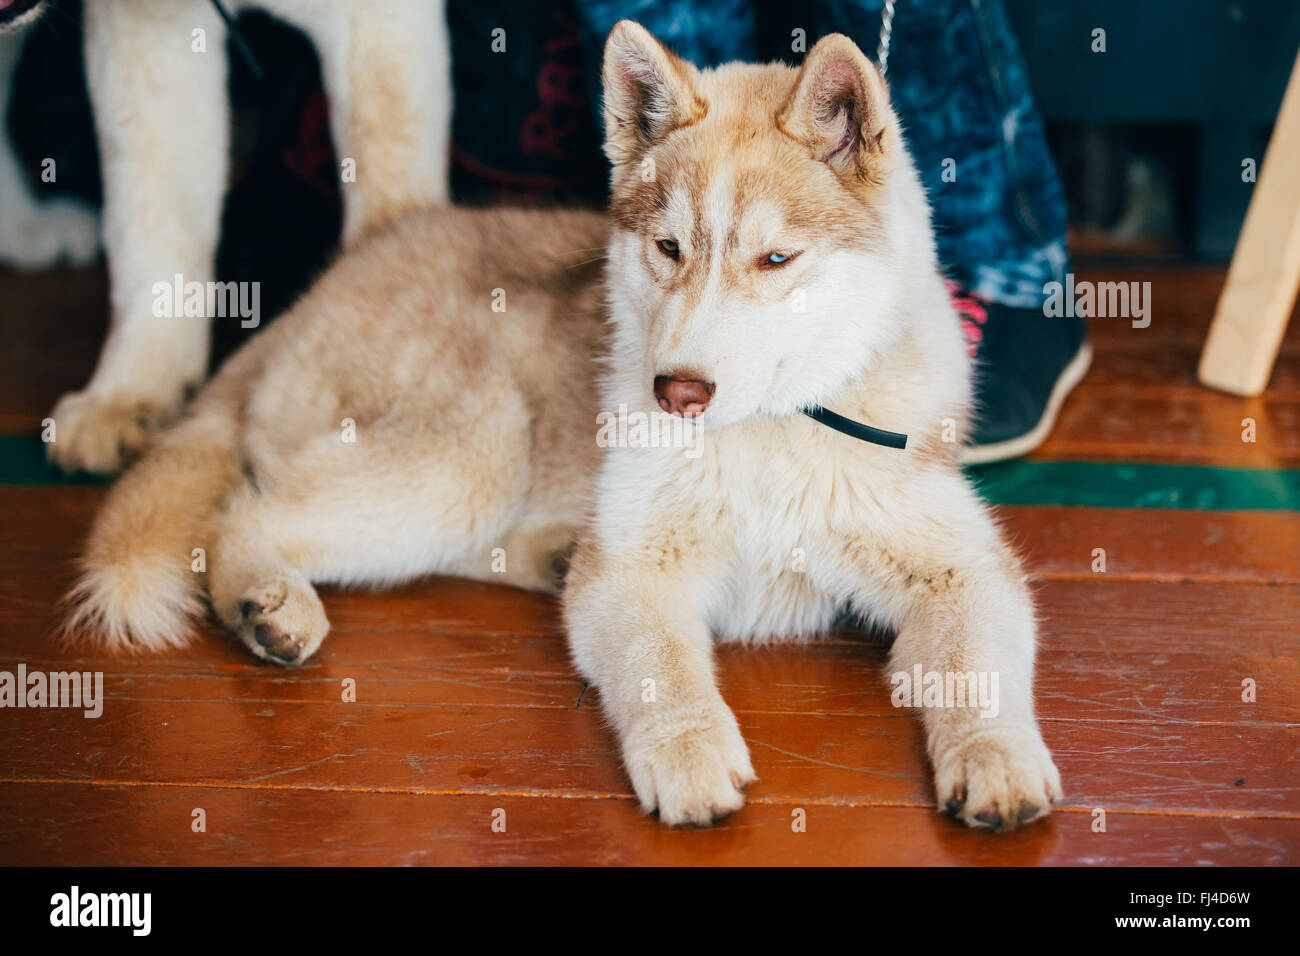 Young Red And White Husky Puppy Dog Sitting On Floor Stock Photo